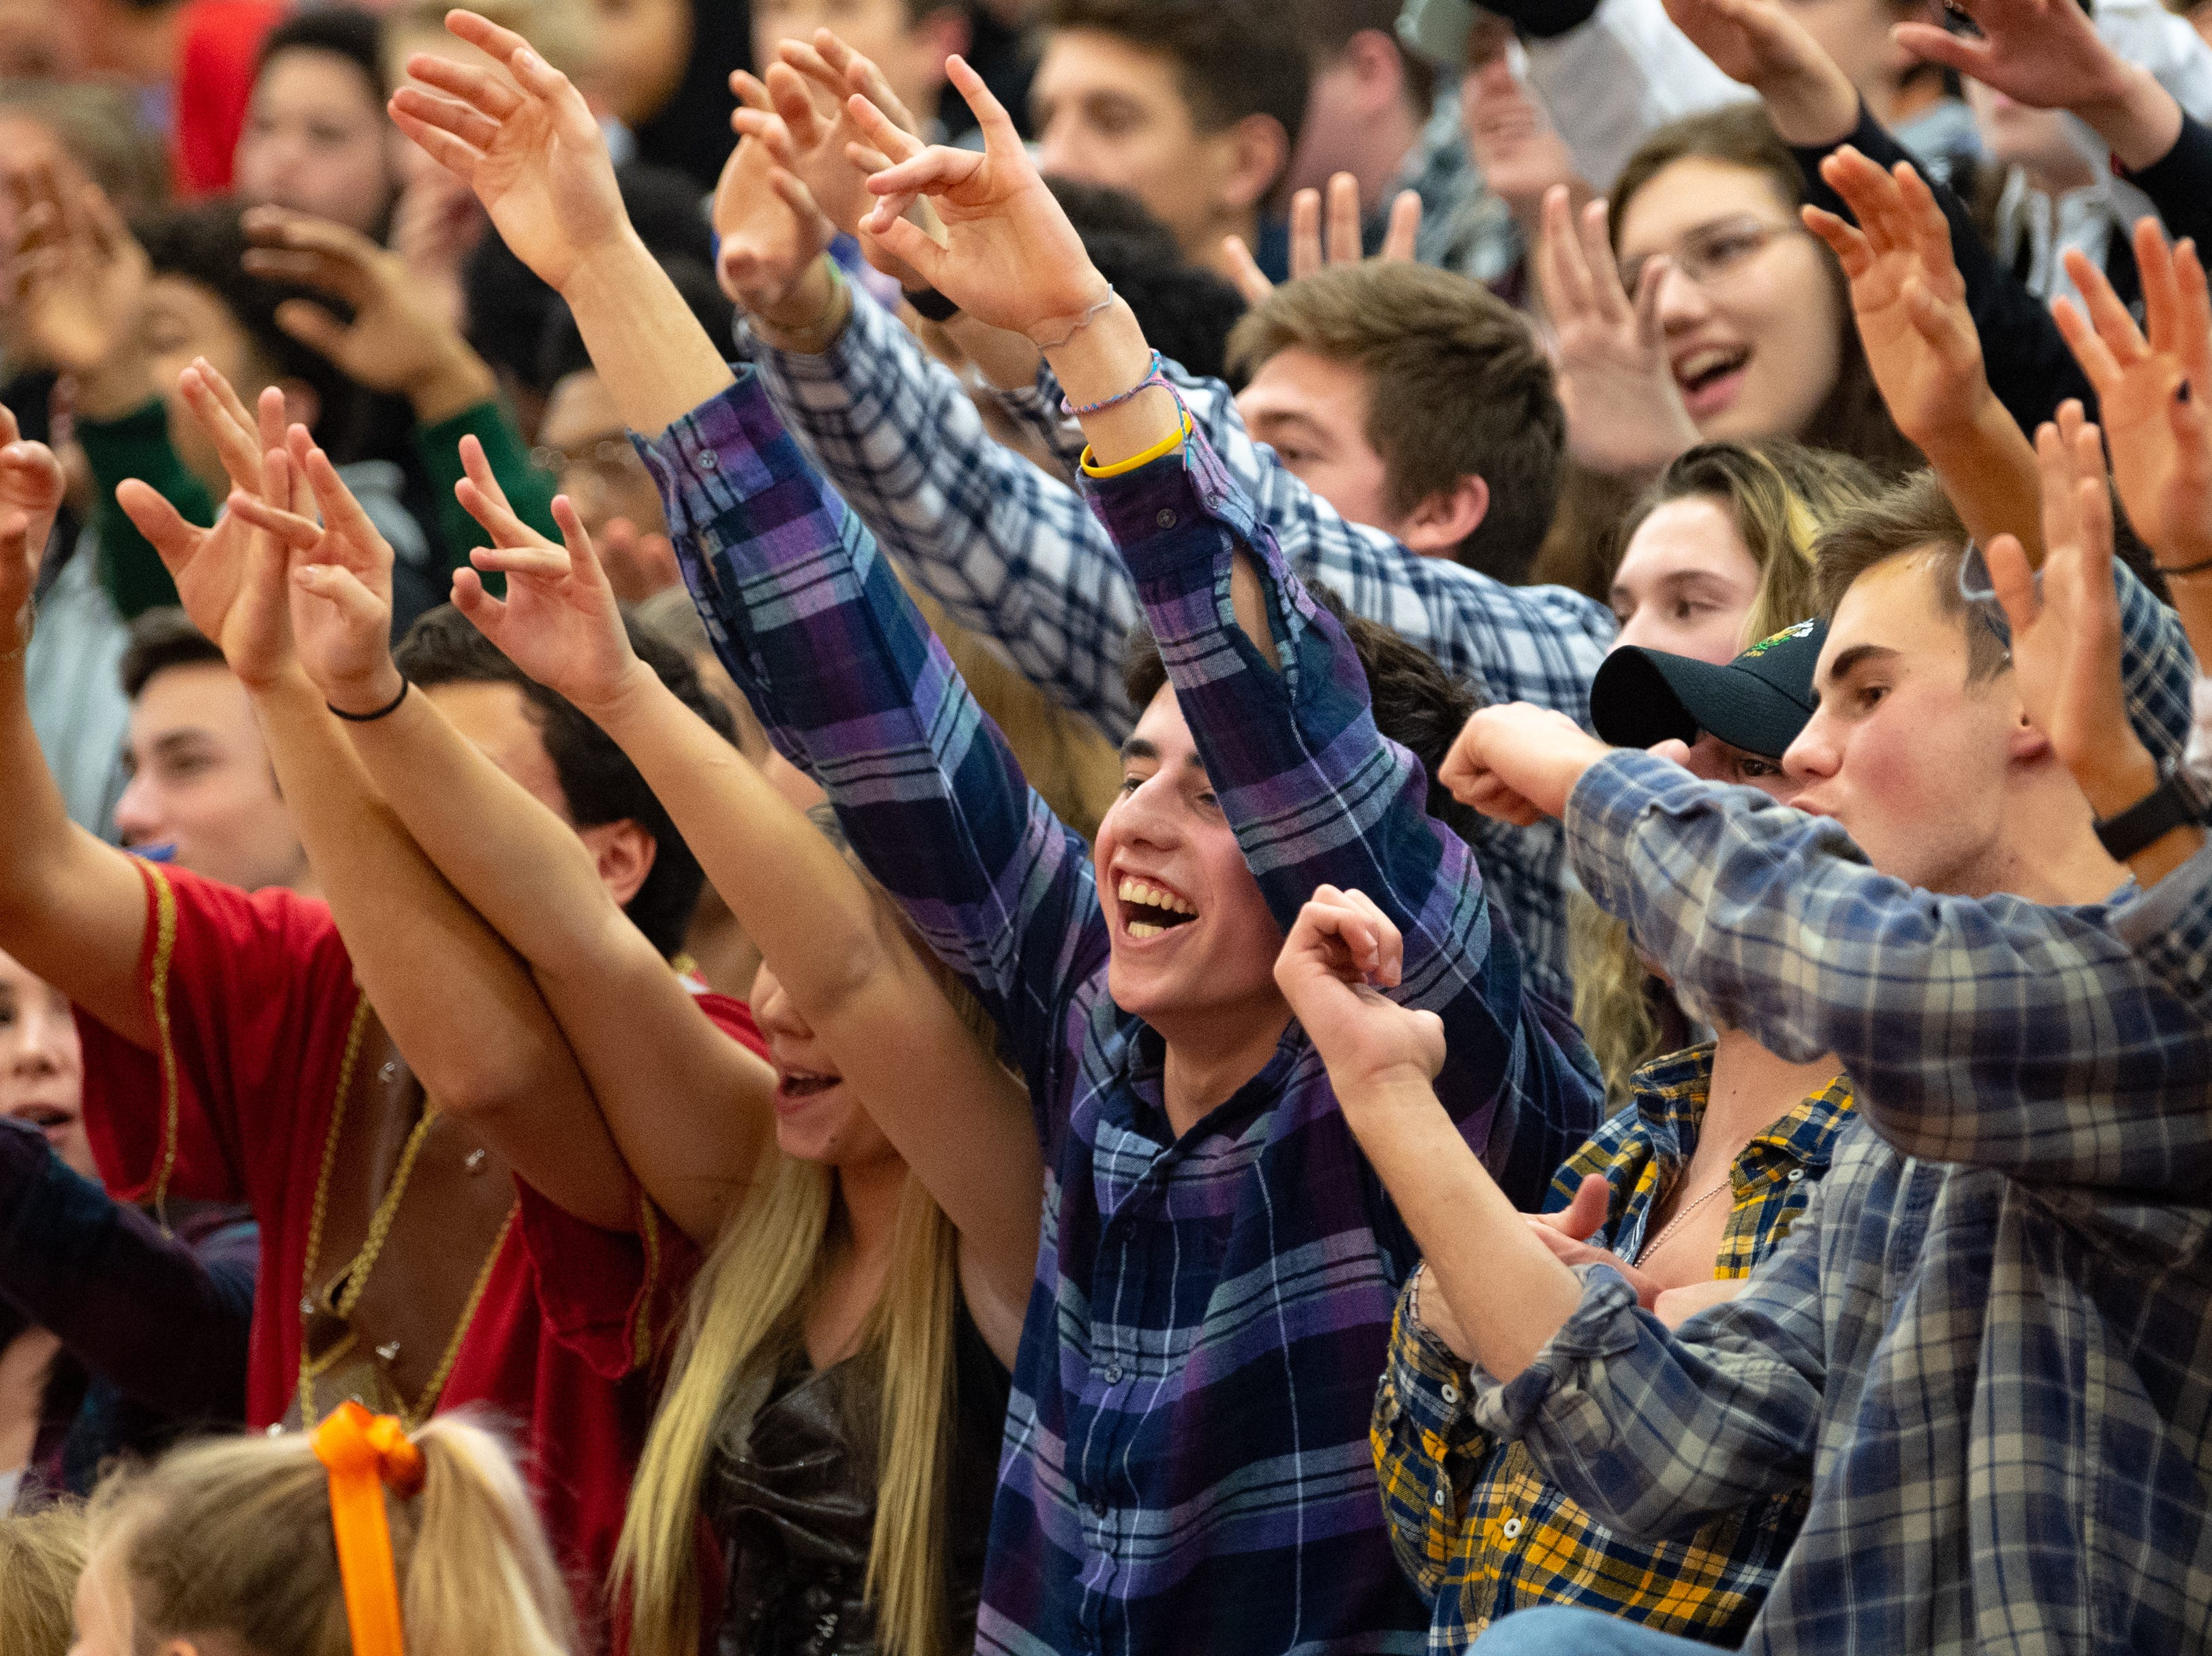 York Suburban's student section is loud and proud during the boys' basketball game between York Suburban and Kennard-Dale at York Suburban High School on January, 4, 2019. The Rams beat the Trojans 65 to 63 in overtime.